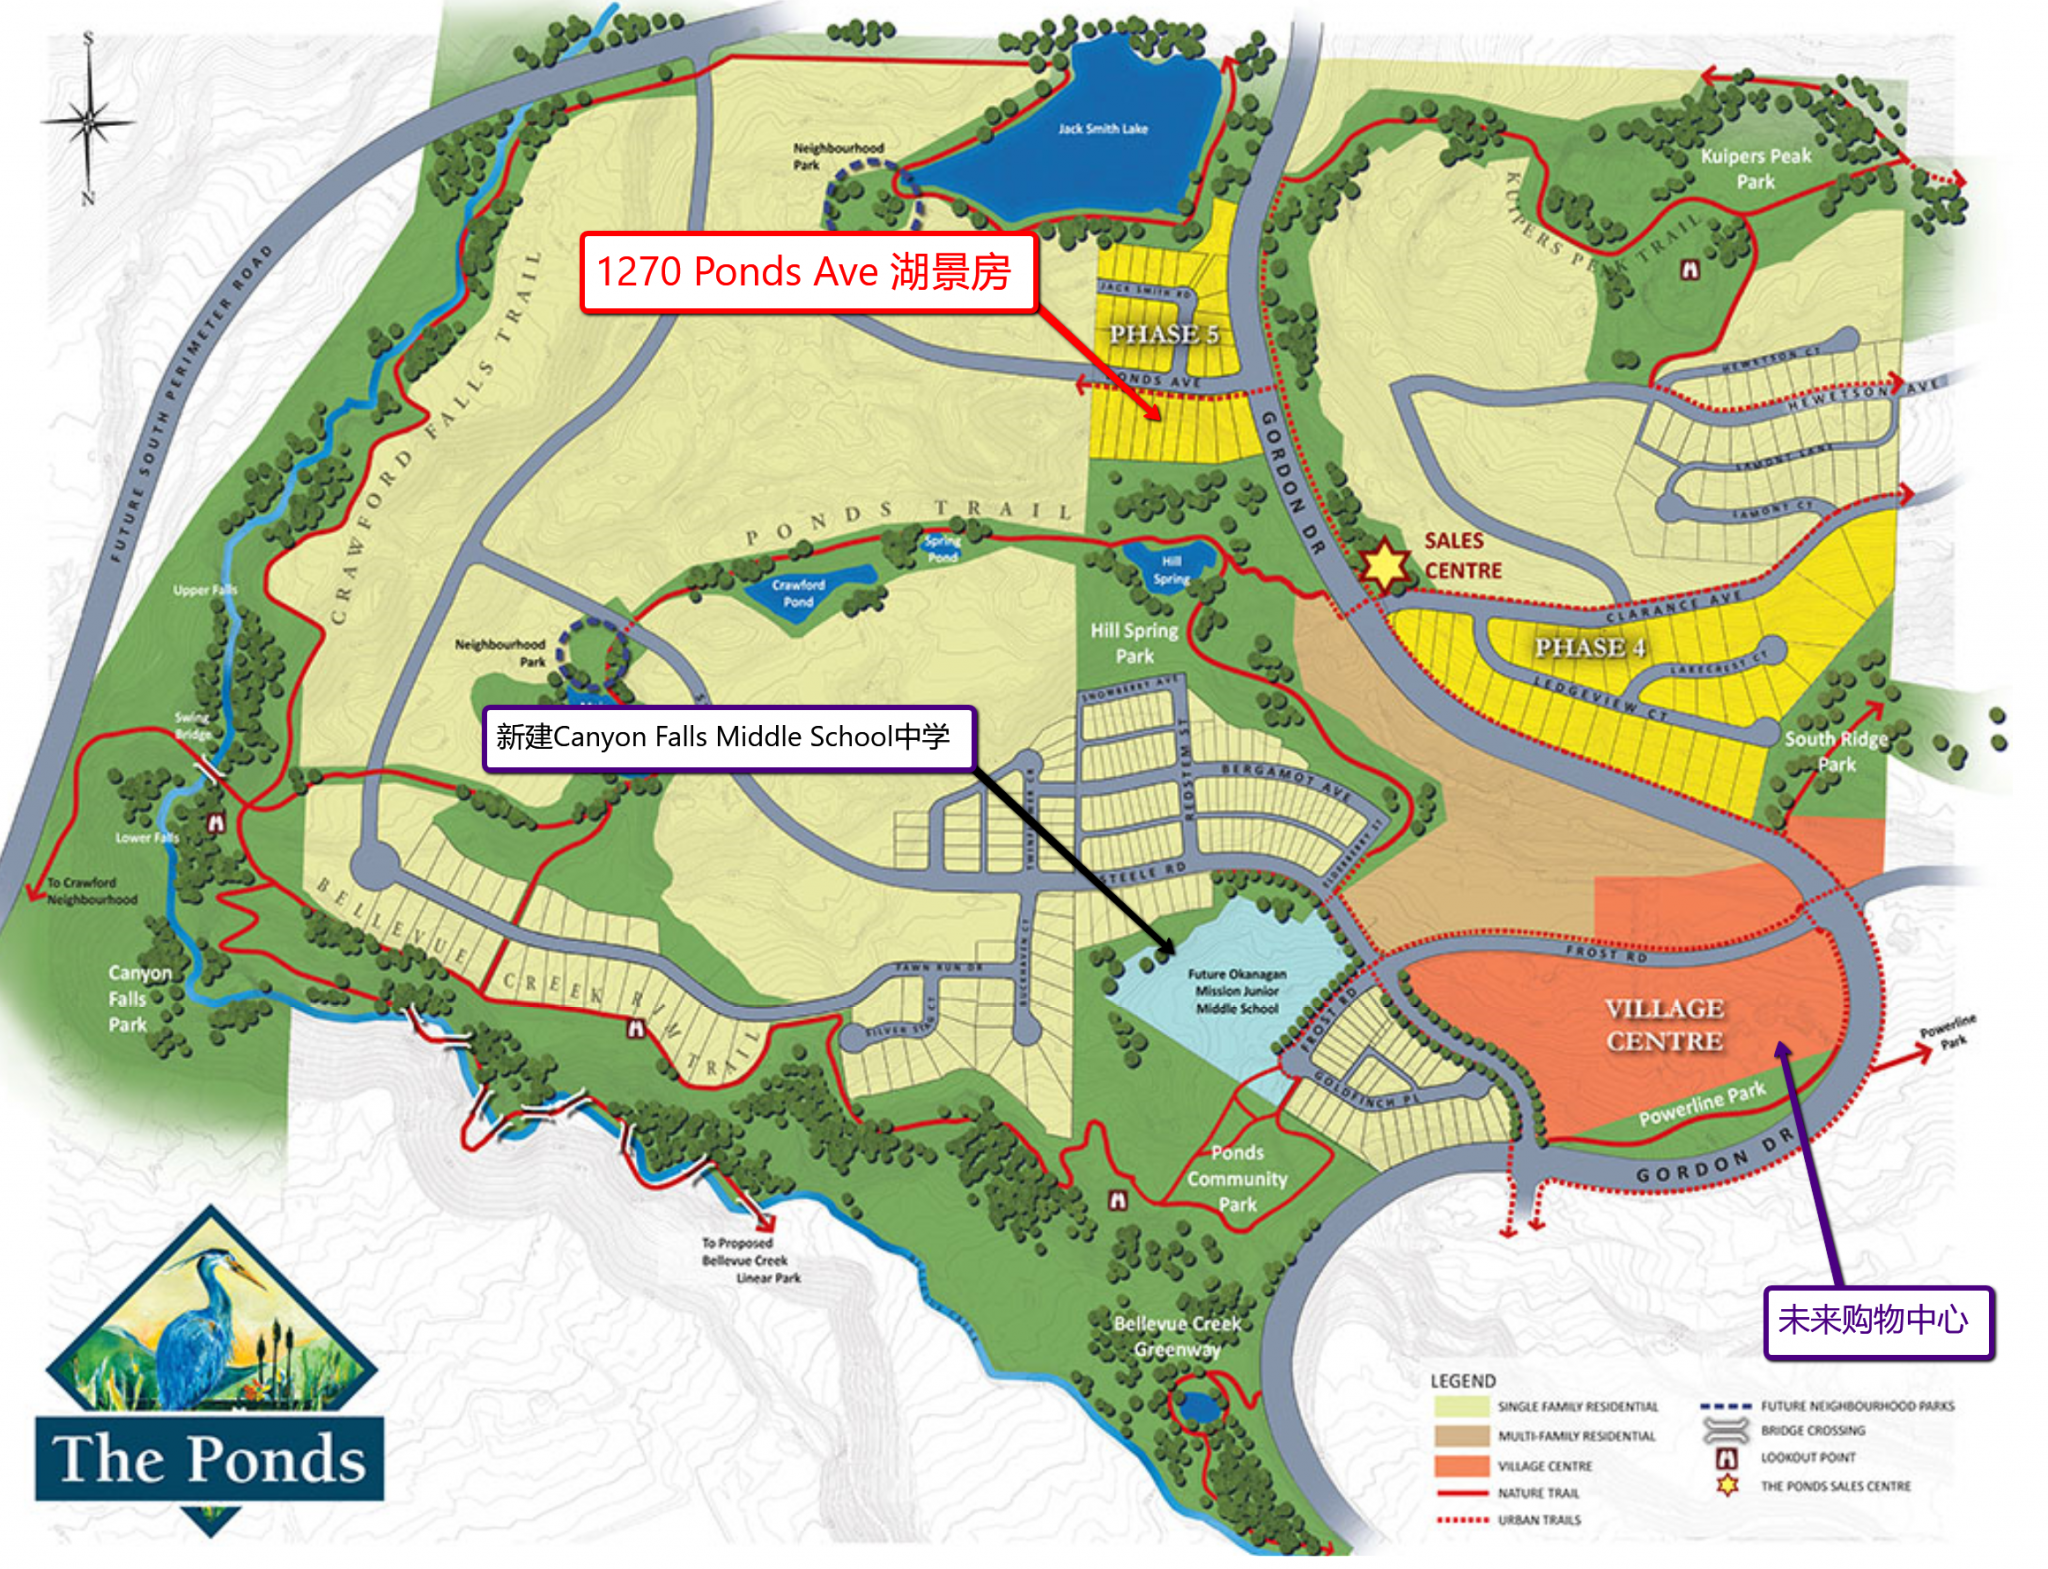 The Ponds Map